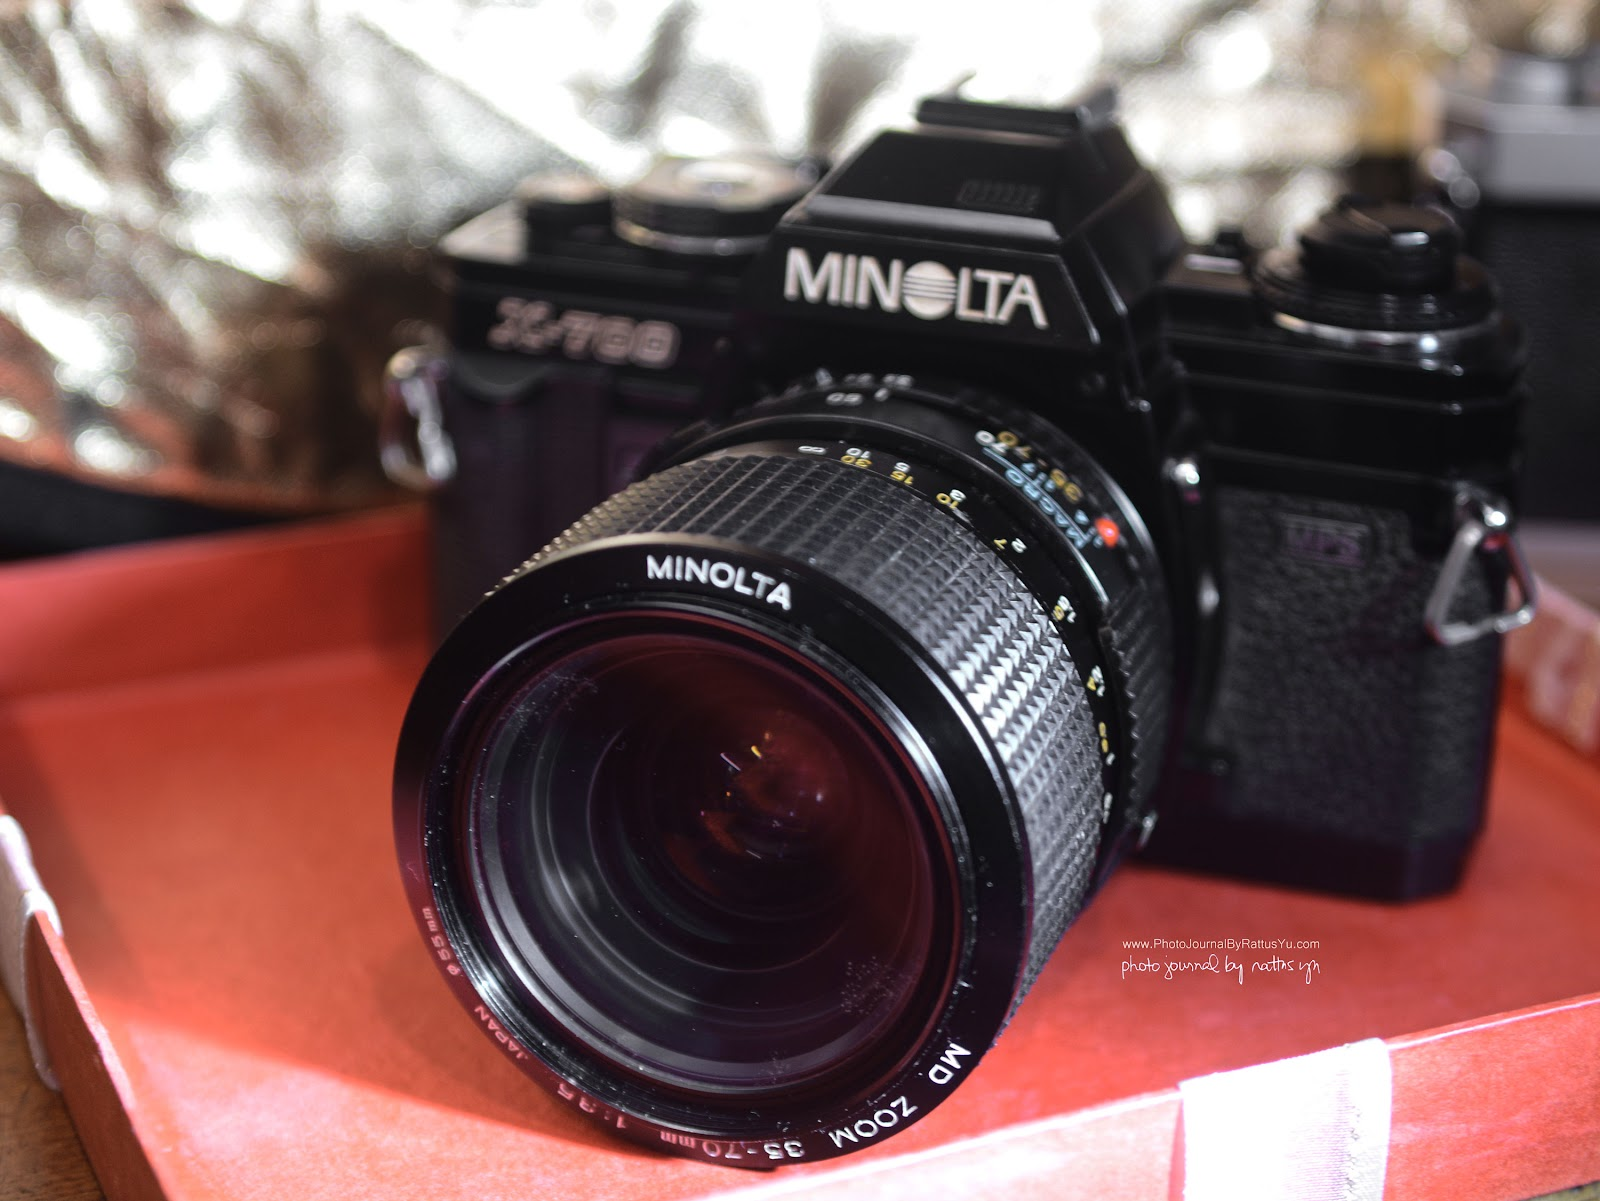 Minolta MD Zoom 35-70mm f3.5 Macro (V.3) with Minolta X700